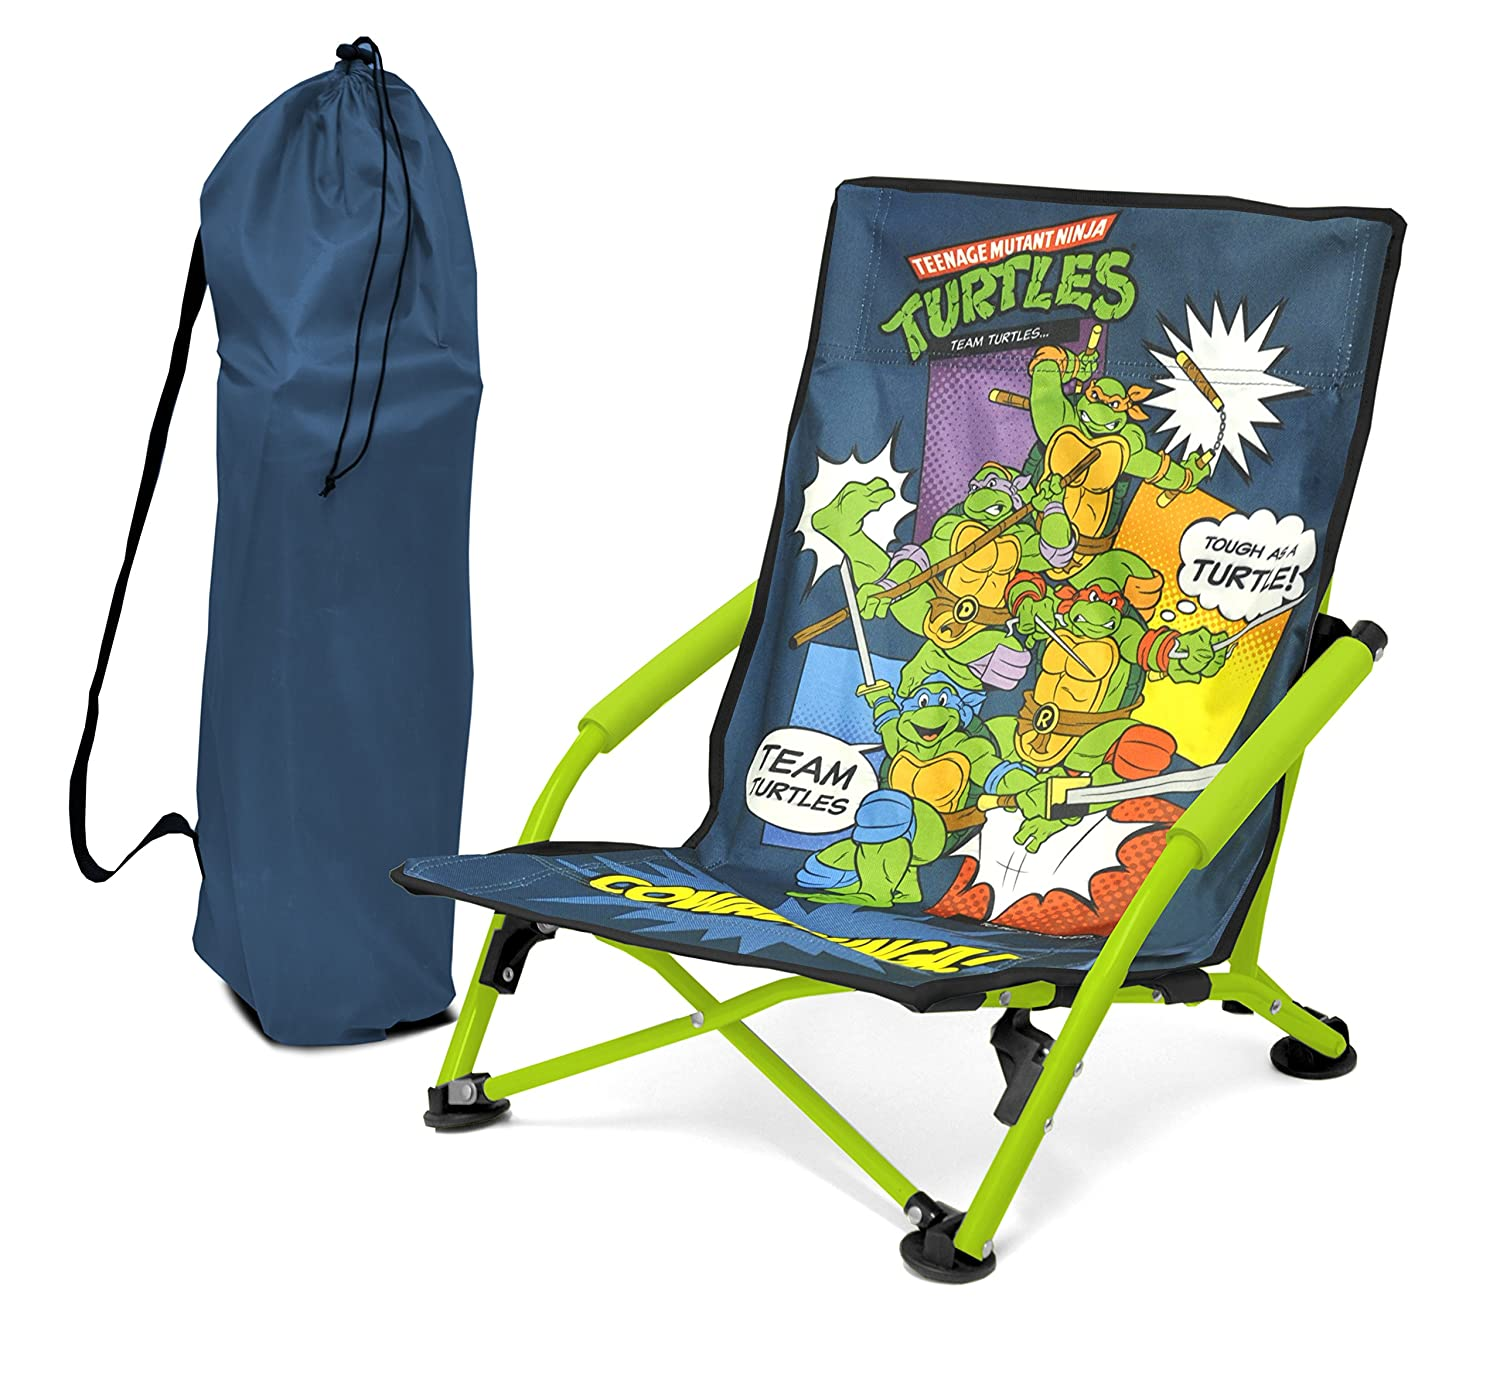 Nickelodeon Teenage Mutant Ninja Turtles Folding Lounge Chair сандалии mjus 809003 101 0001 rosa perla